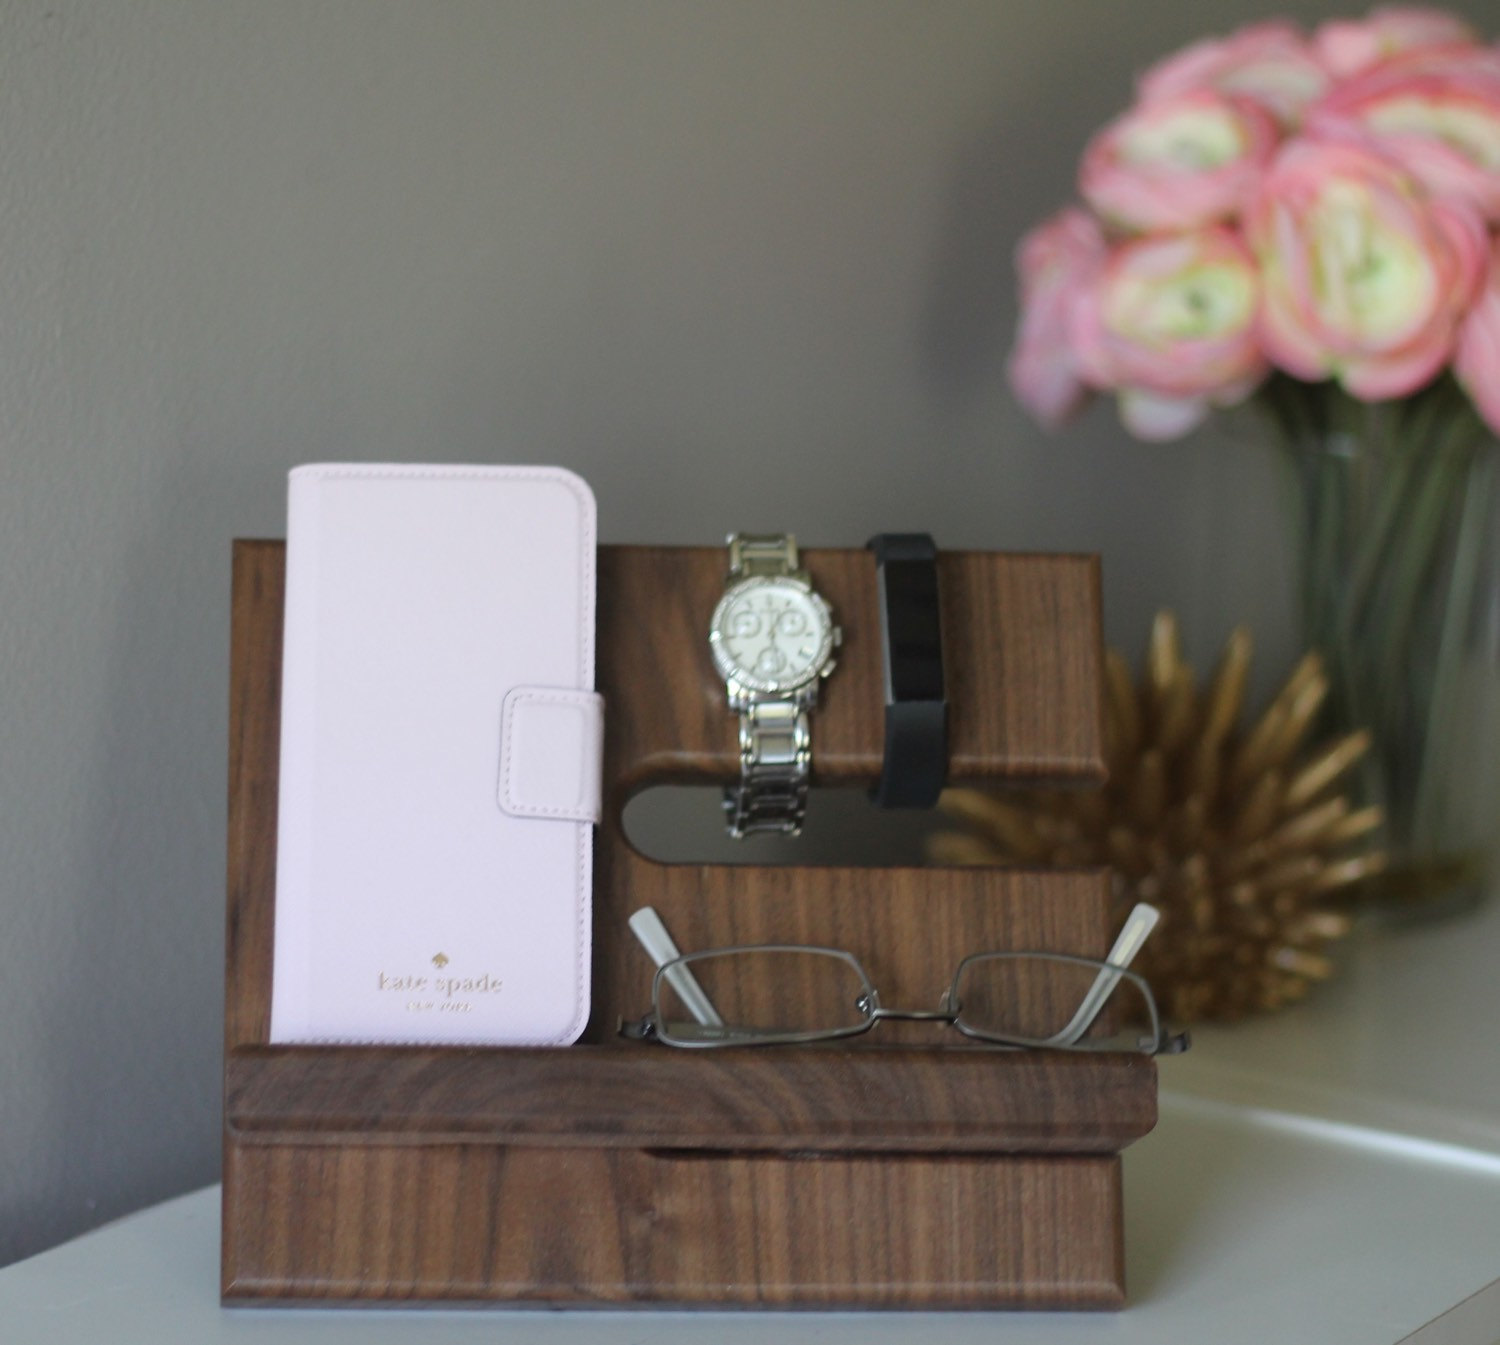 wood phone charging station via http://etsy.me/2F9Dw8W